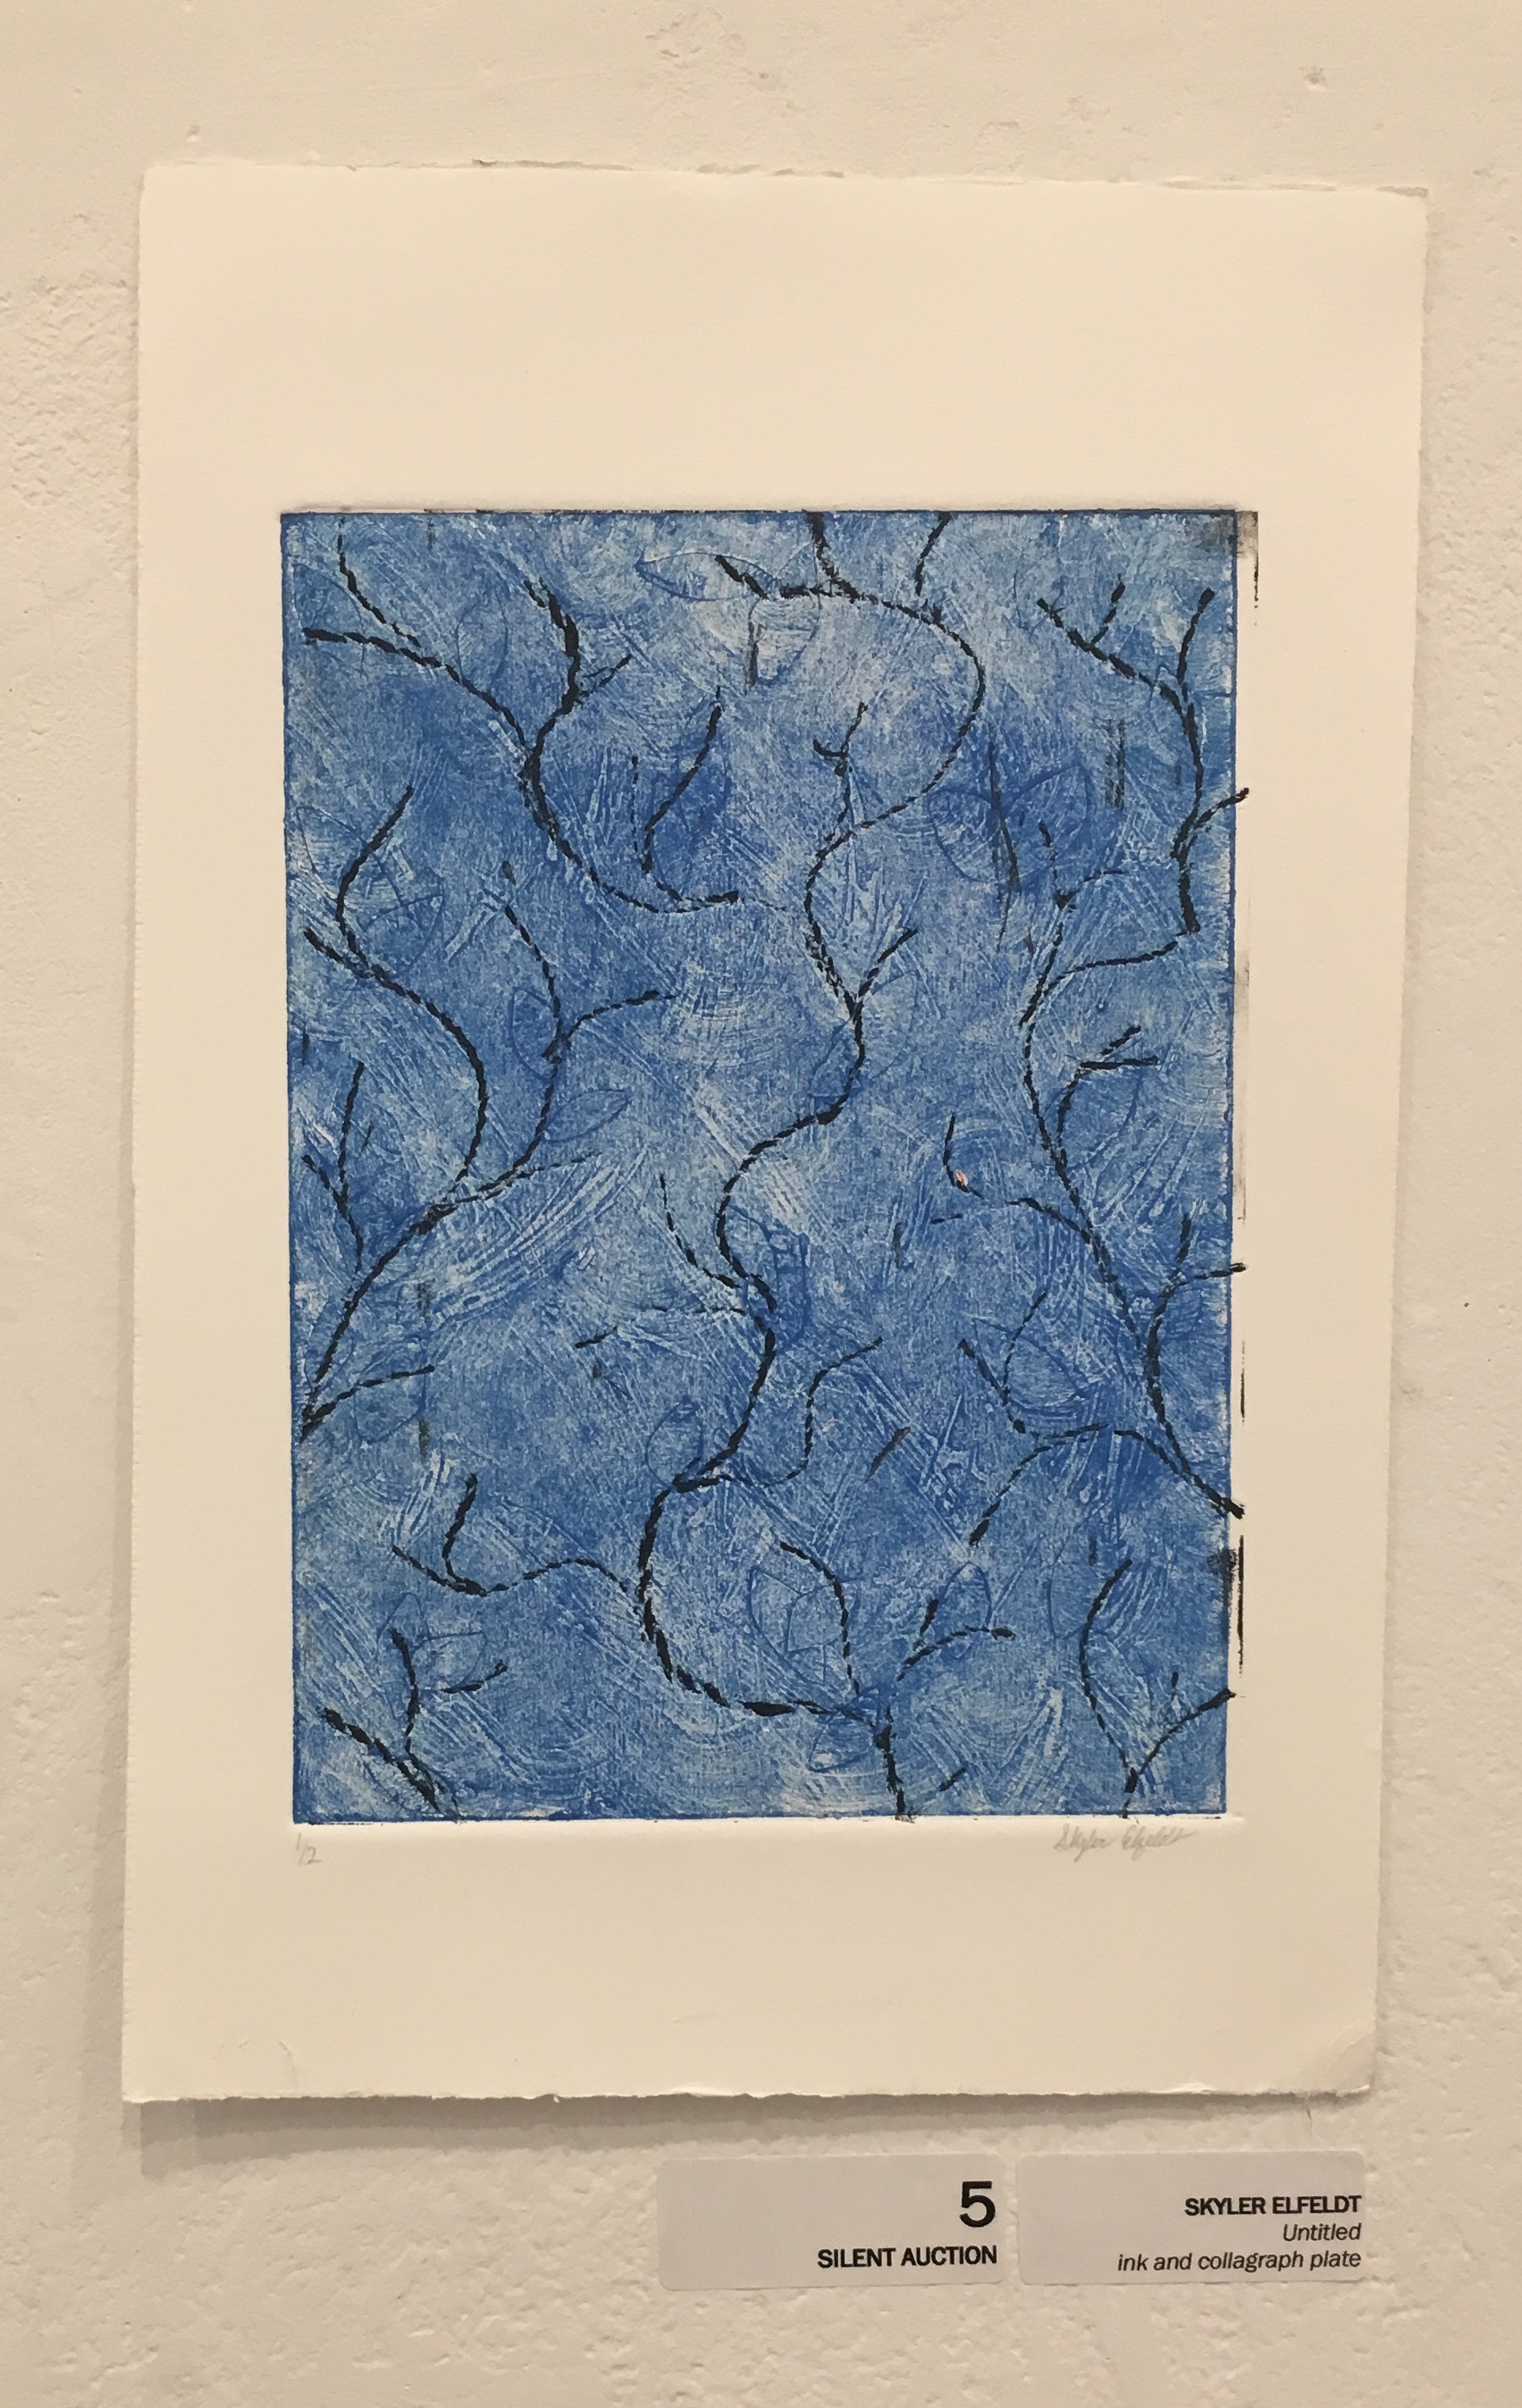 """Skyler Elfeldt, """"Untitled"""" (ink and collograph plate)"""